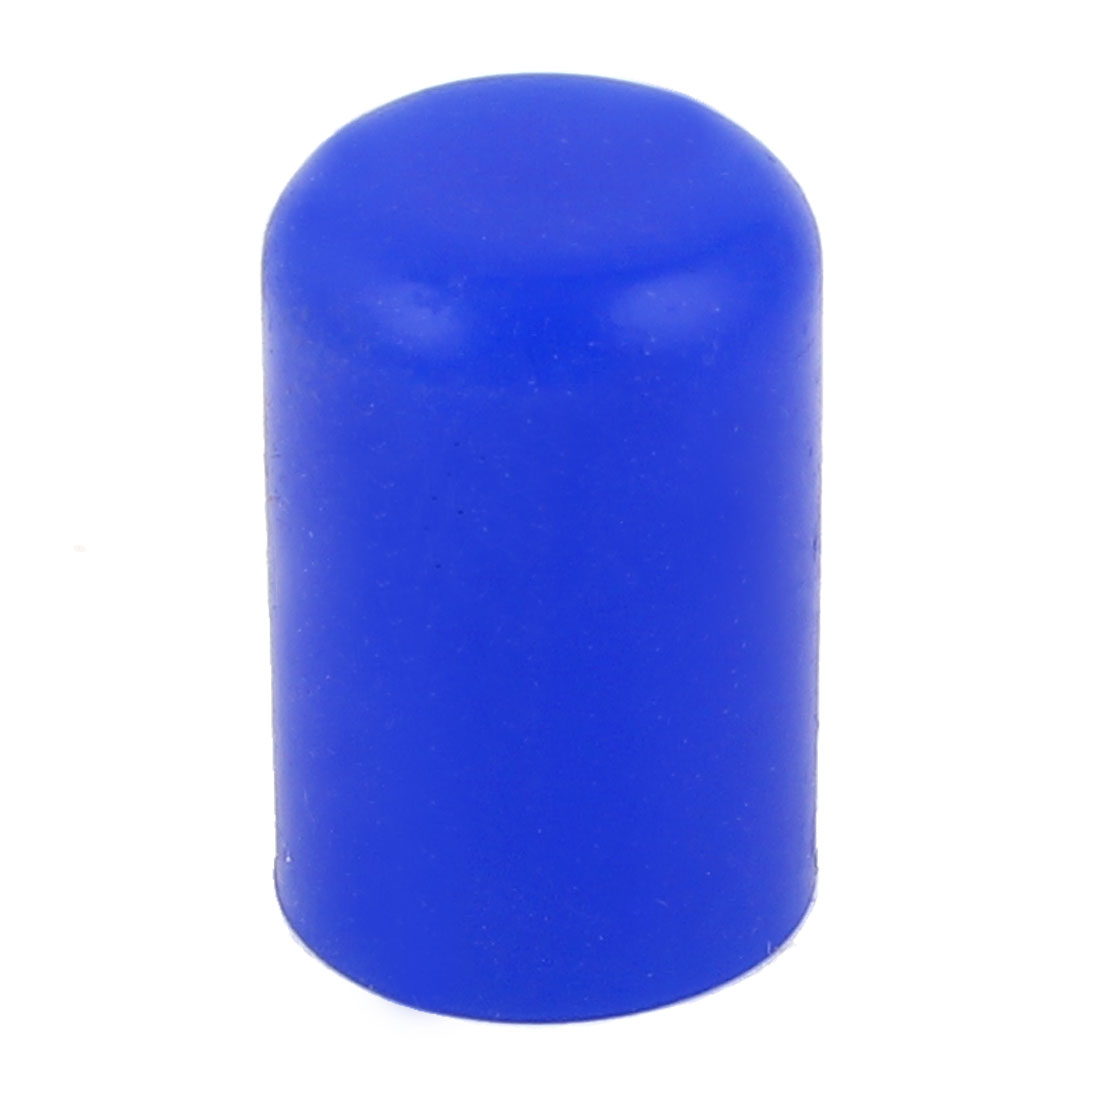 35mm Long Blue Silicone Hose End Blanking Caps Cap Off Bung Finisher Pipe